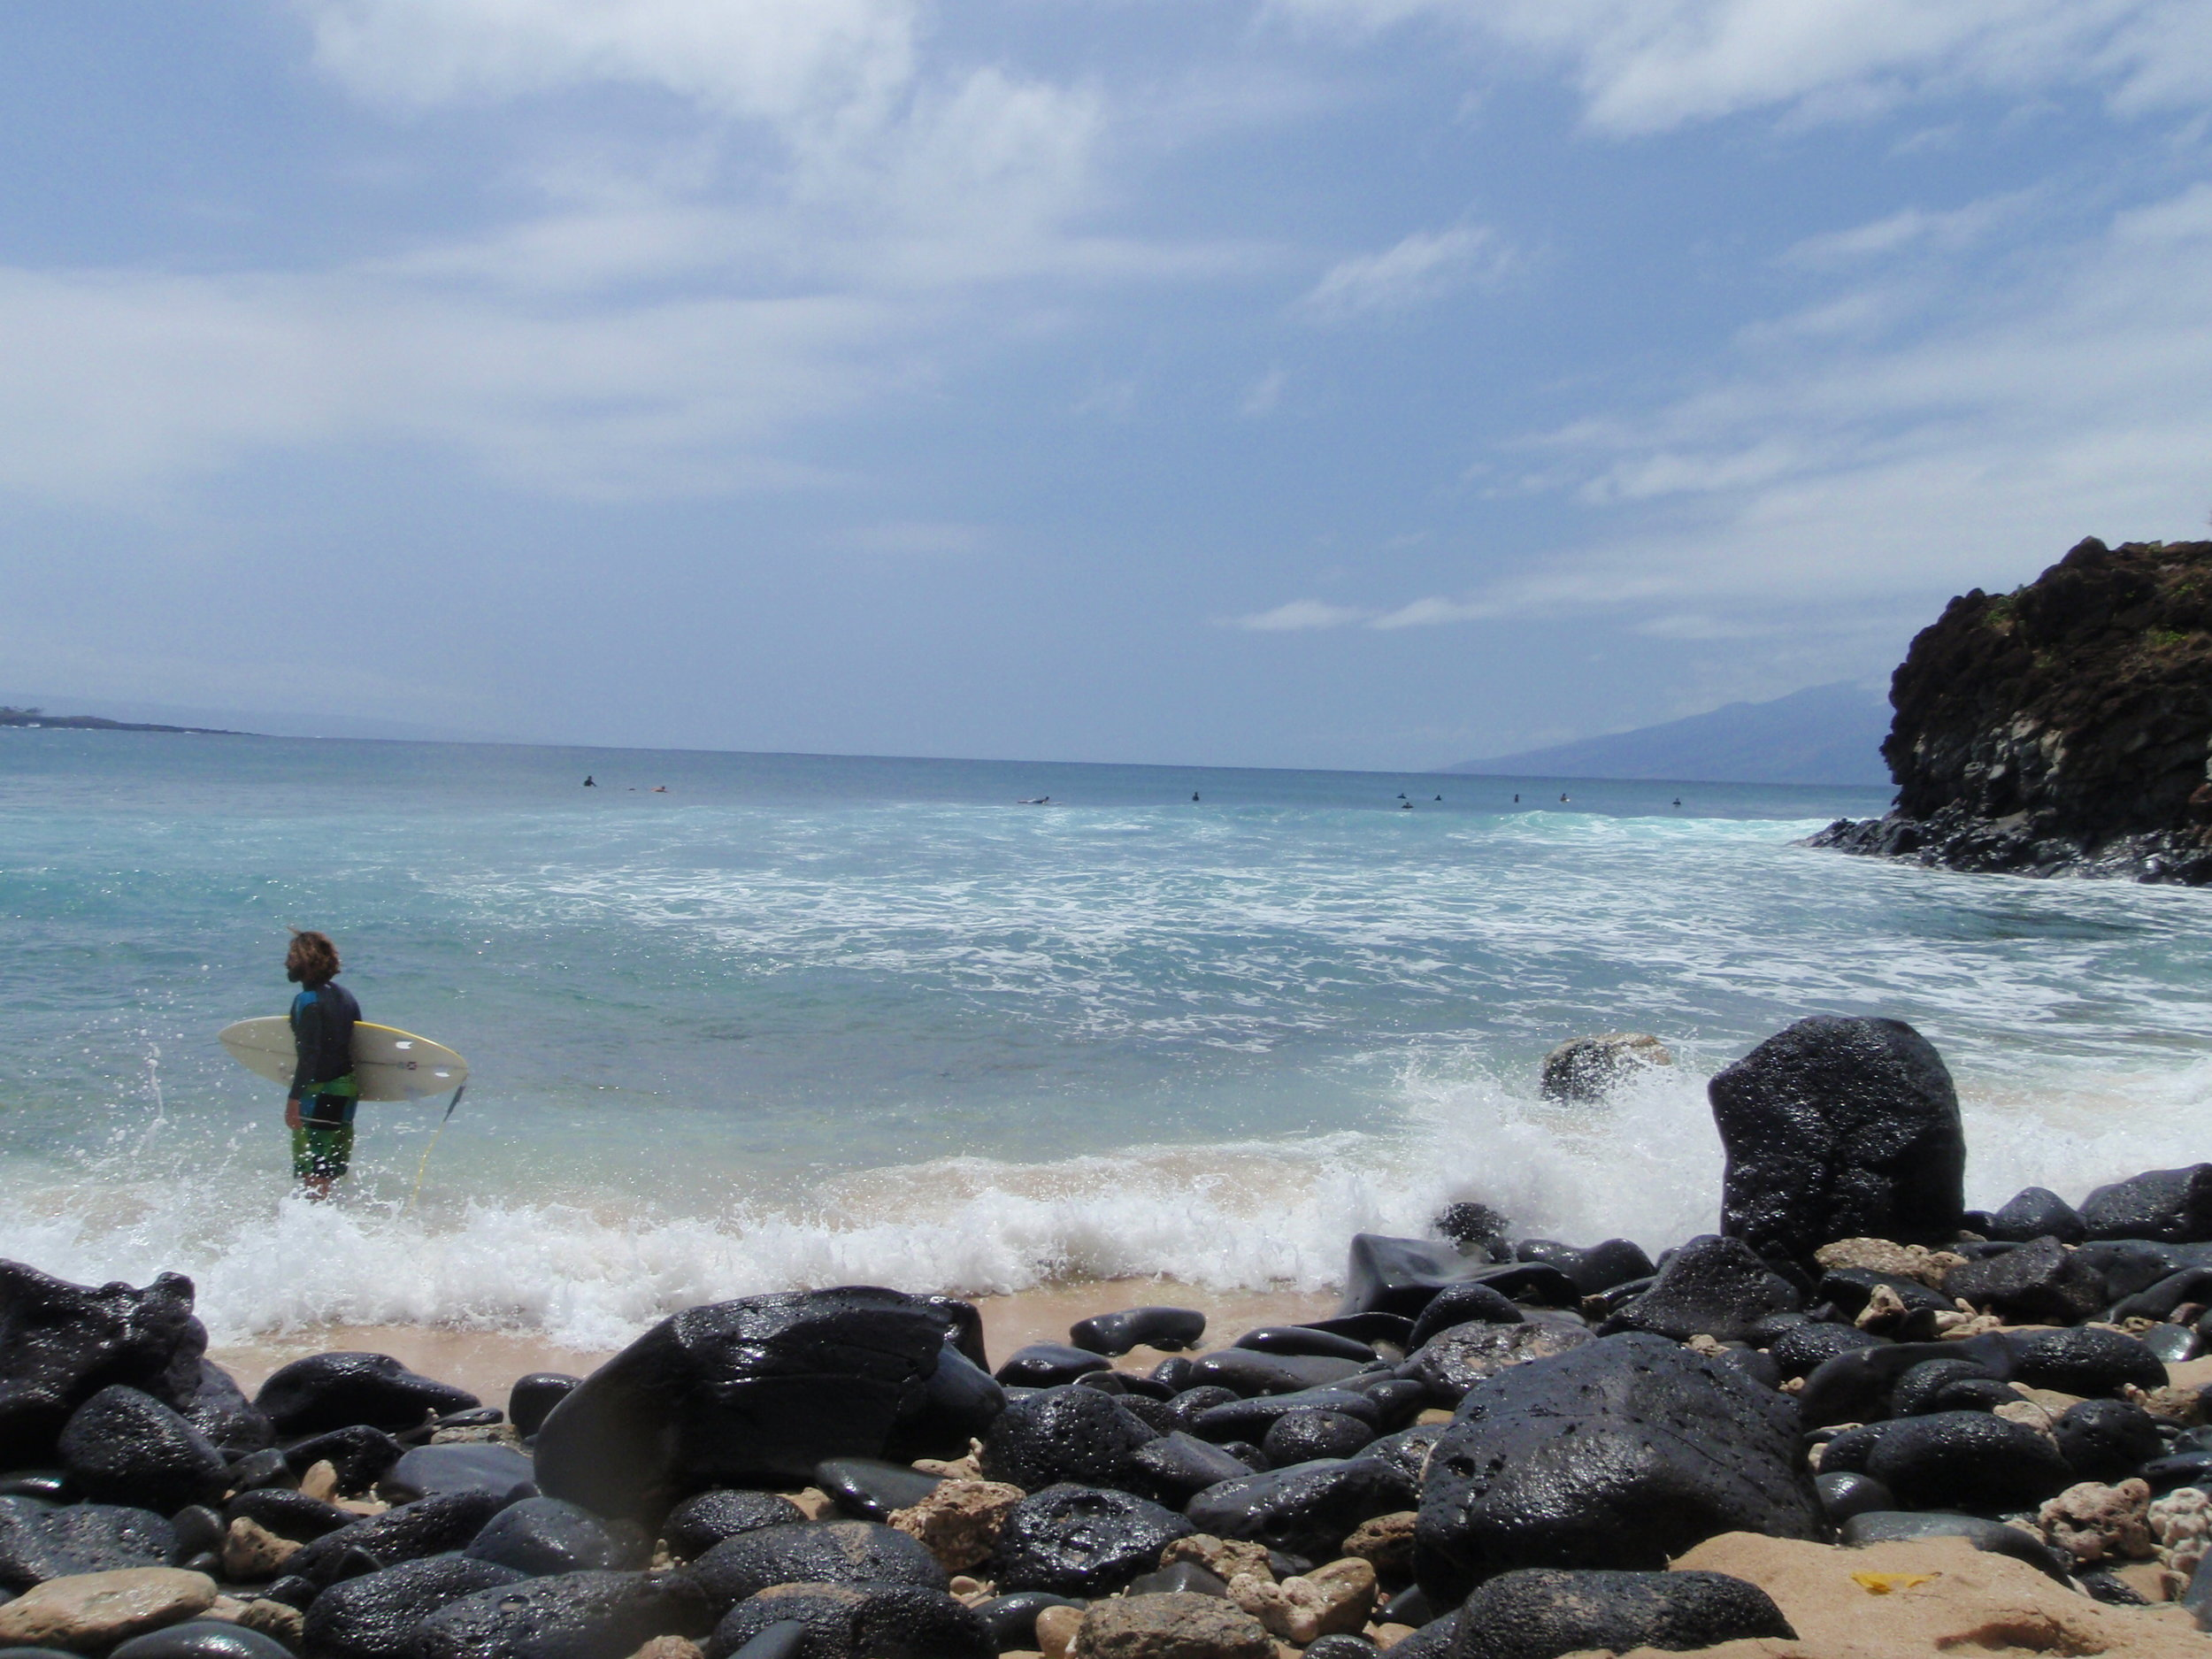 Ryan surfing on the west side of Maui